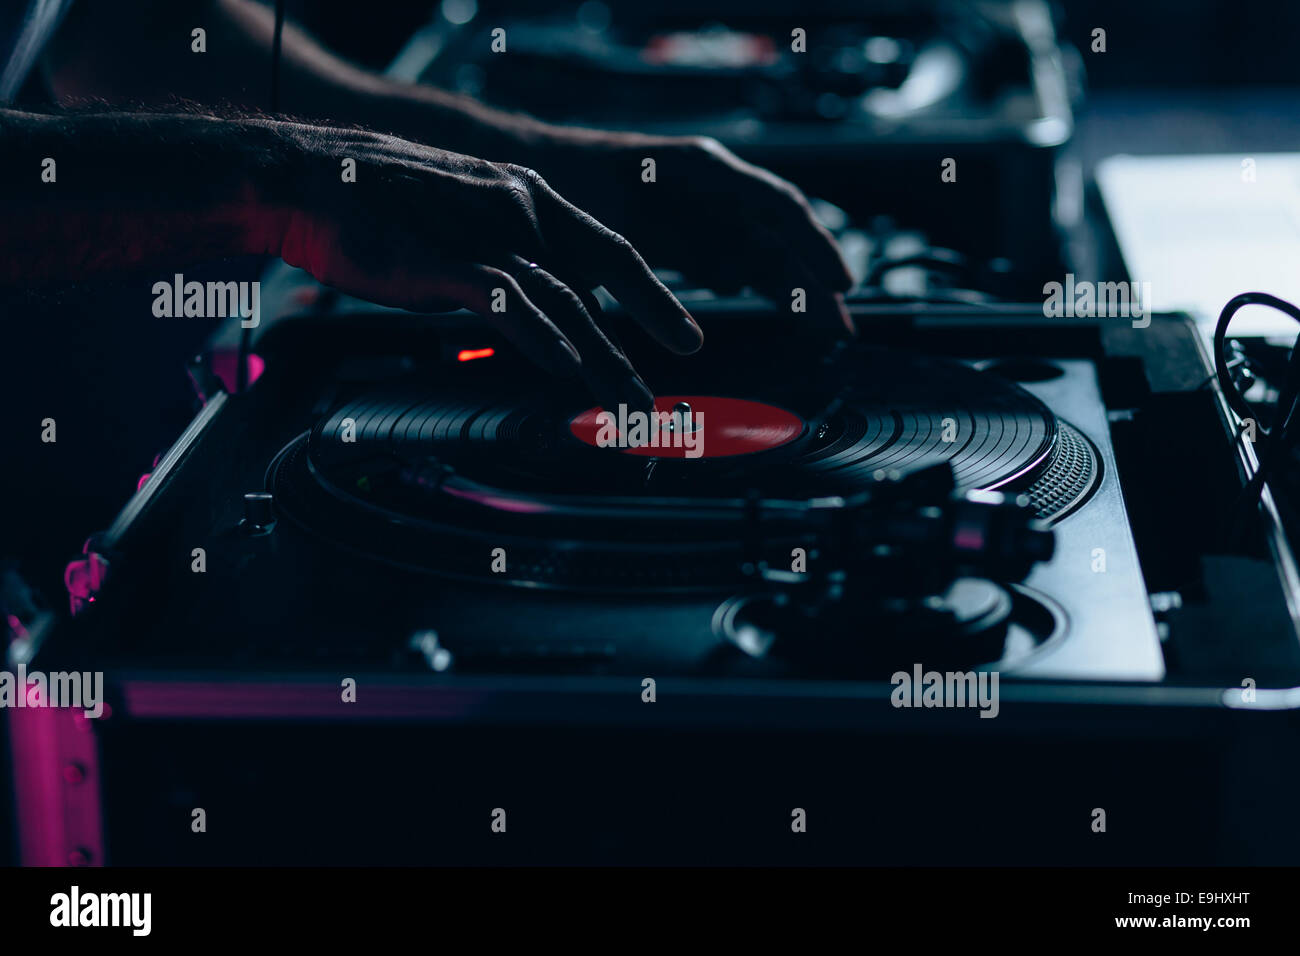 Male dj at work in night club. Shallow depth of field - Stock Image